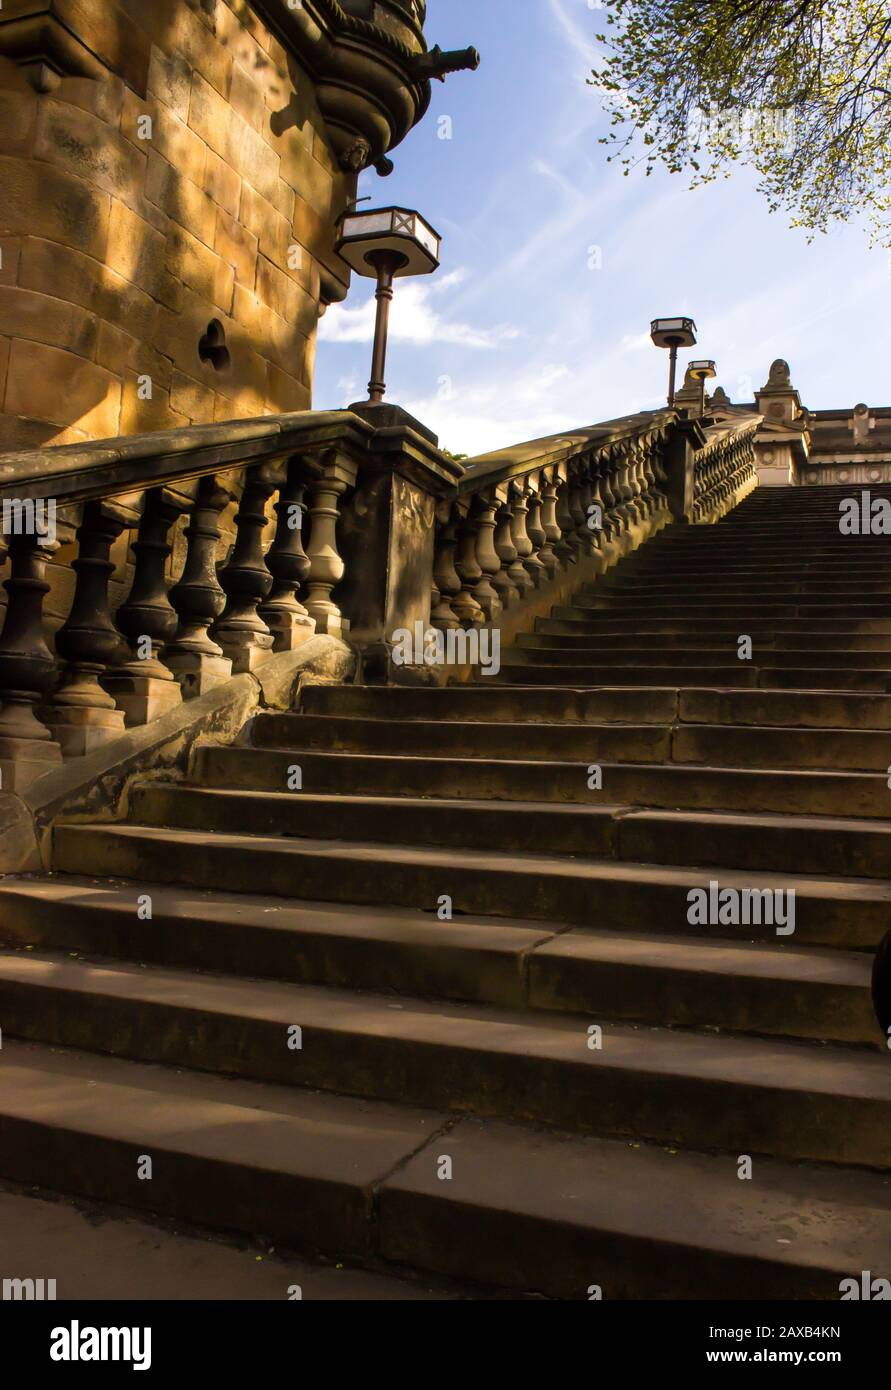 Staircase leading out of the filled in Loch of Princess Street Gardens, Edinburgh, covered in the dappled light and shadow Stock Photo